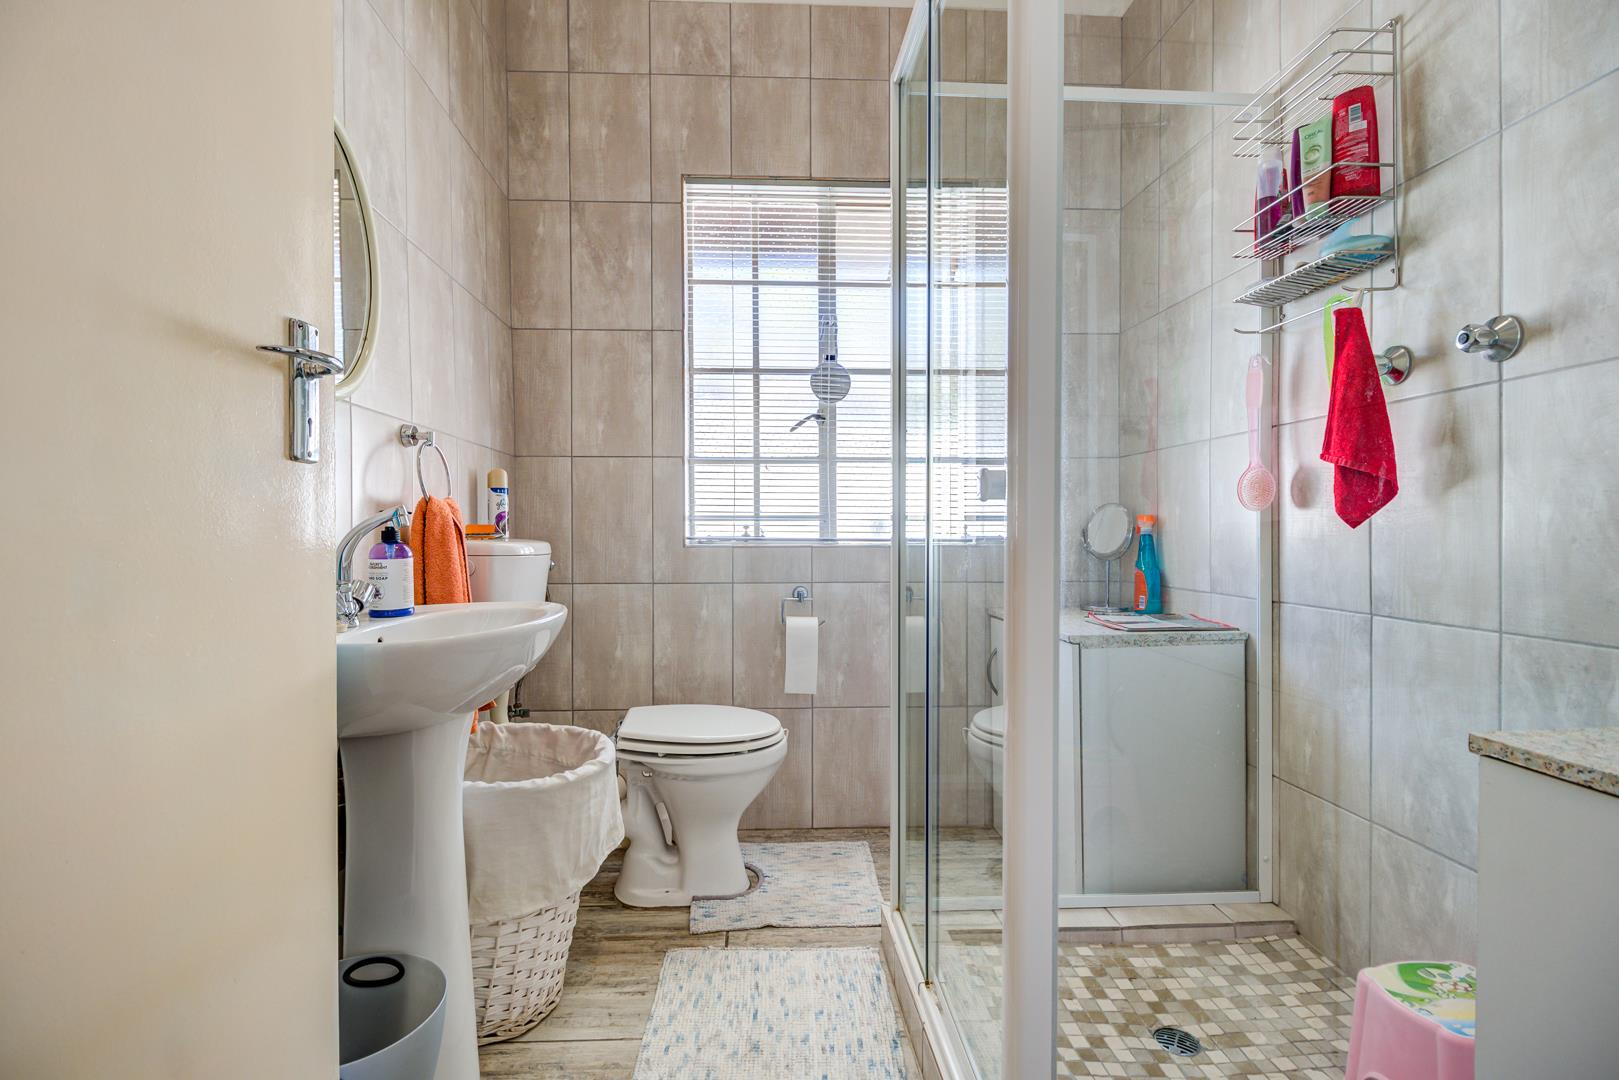 3 Bedroom House For Sale in Illiondale